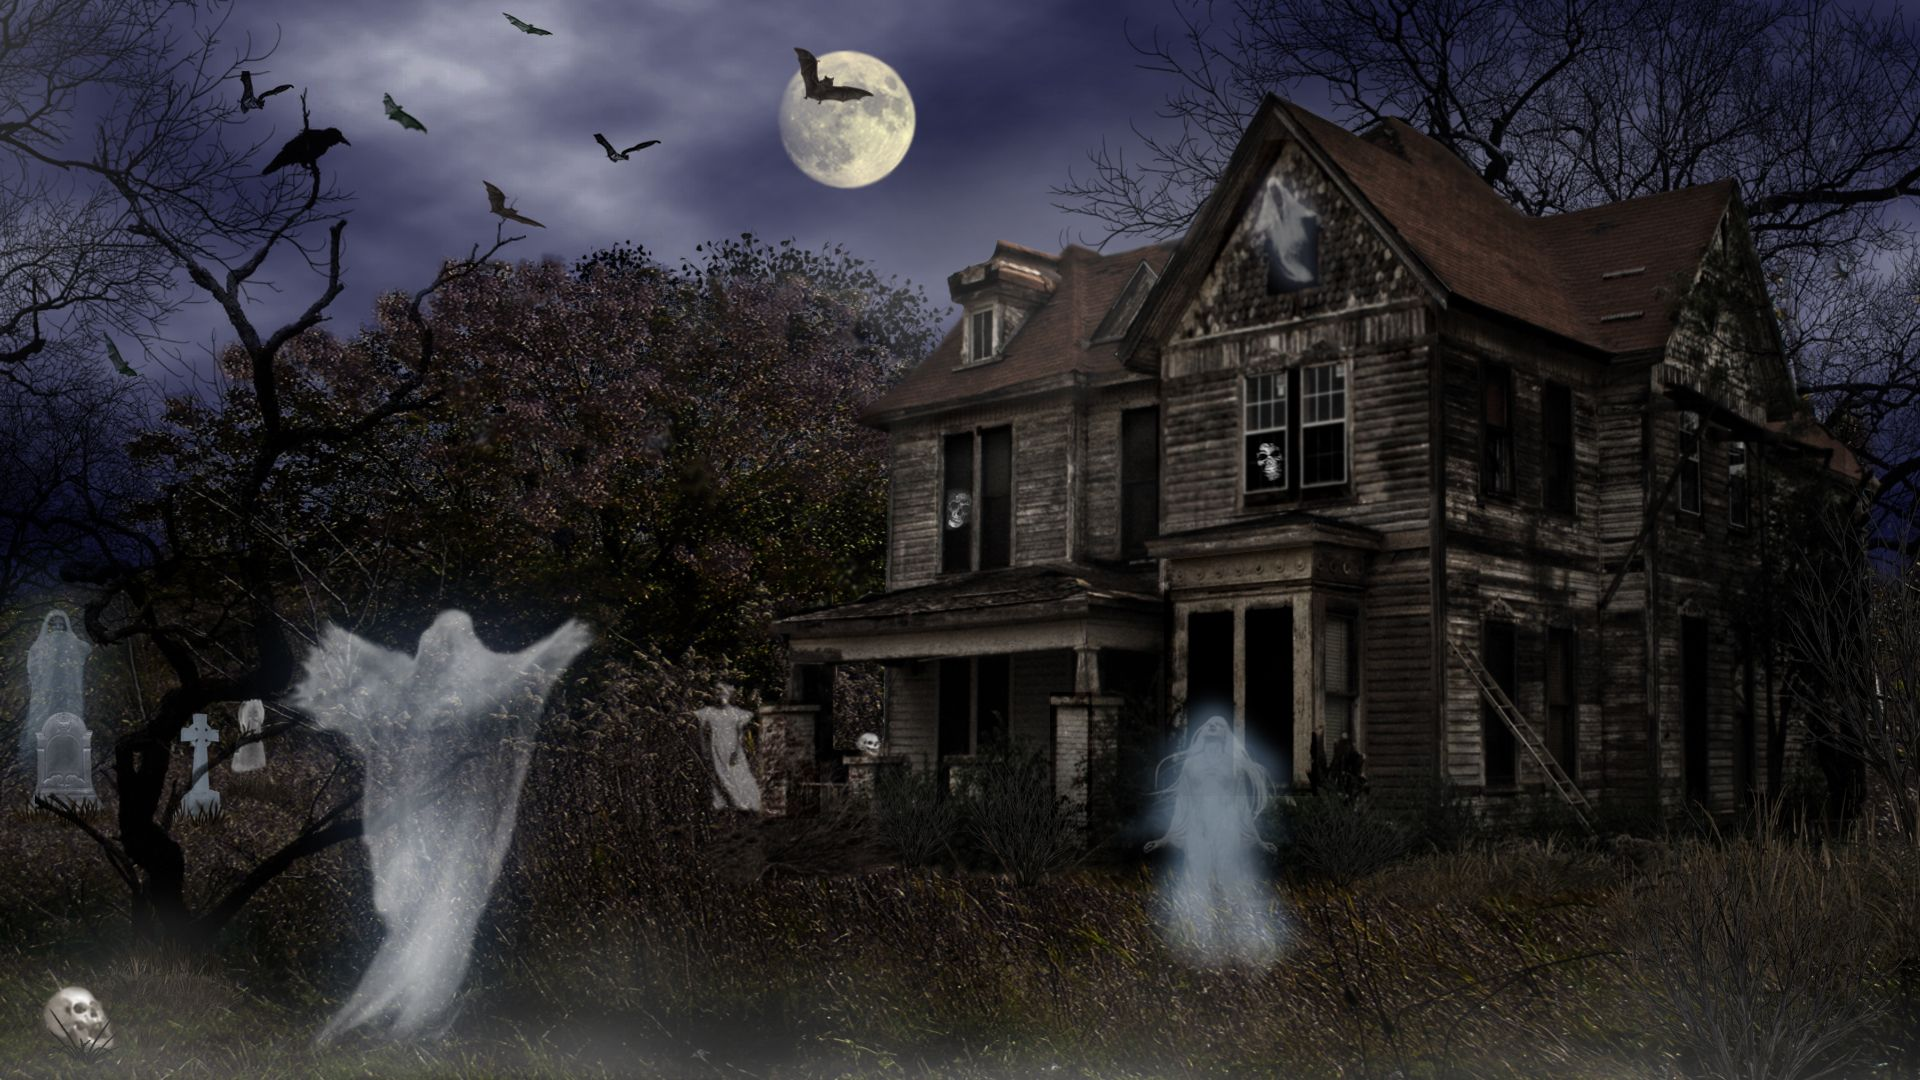 vacances halloween vacances haunted house maison night effrayant fond dcran wallpaper hd pinterest halloween haunted houses and wallpaper - Halloween Haunted Places